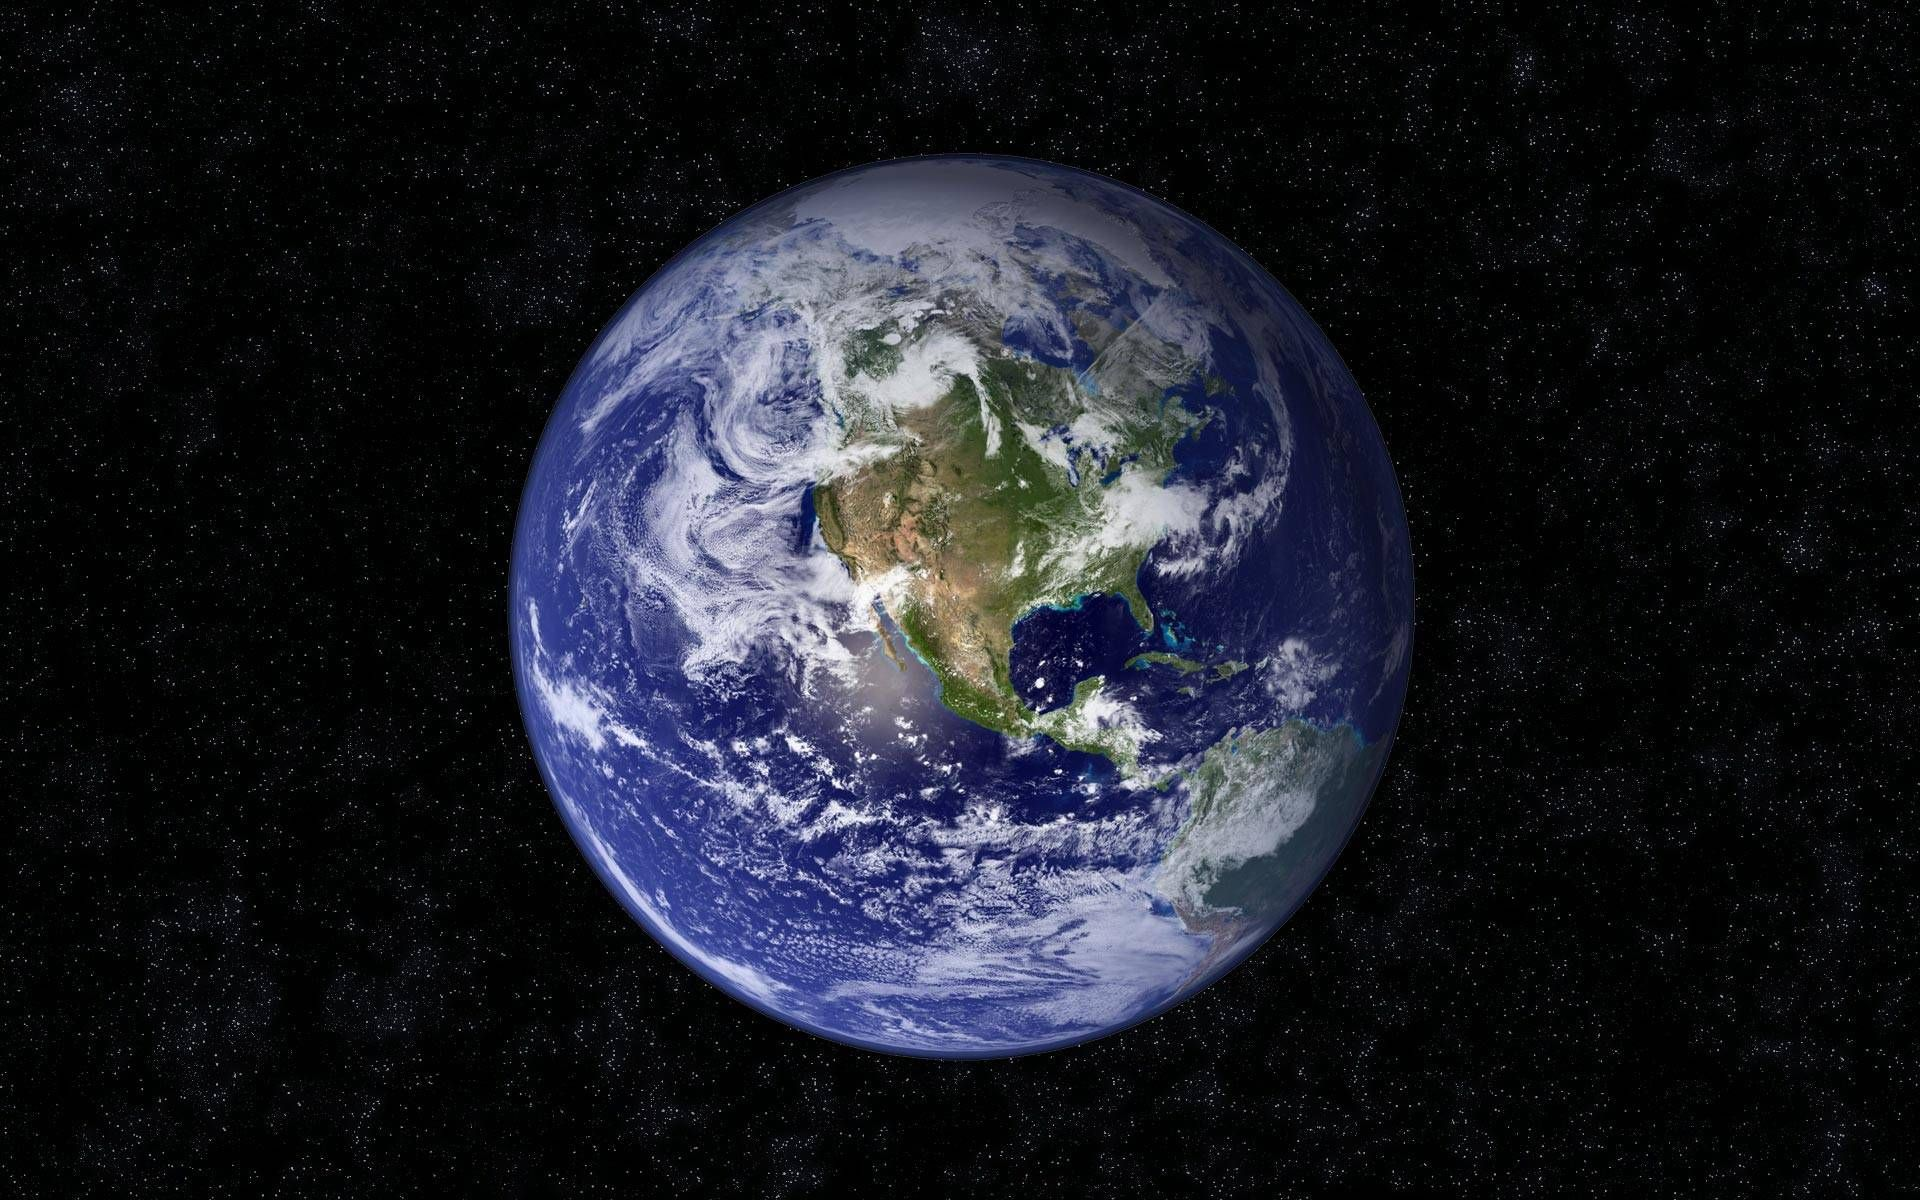 NASA Earth HD Wallpaper FREE Android Apps on Google Play